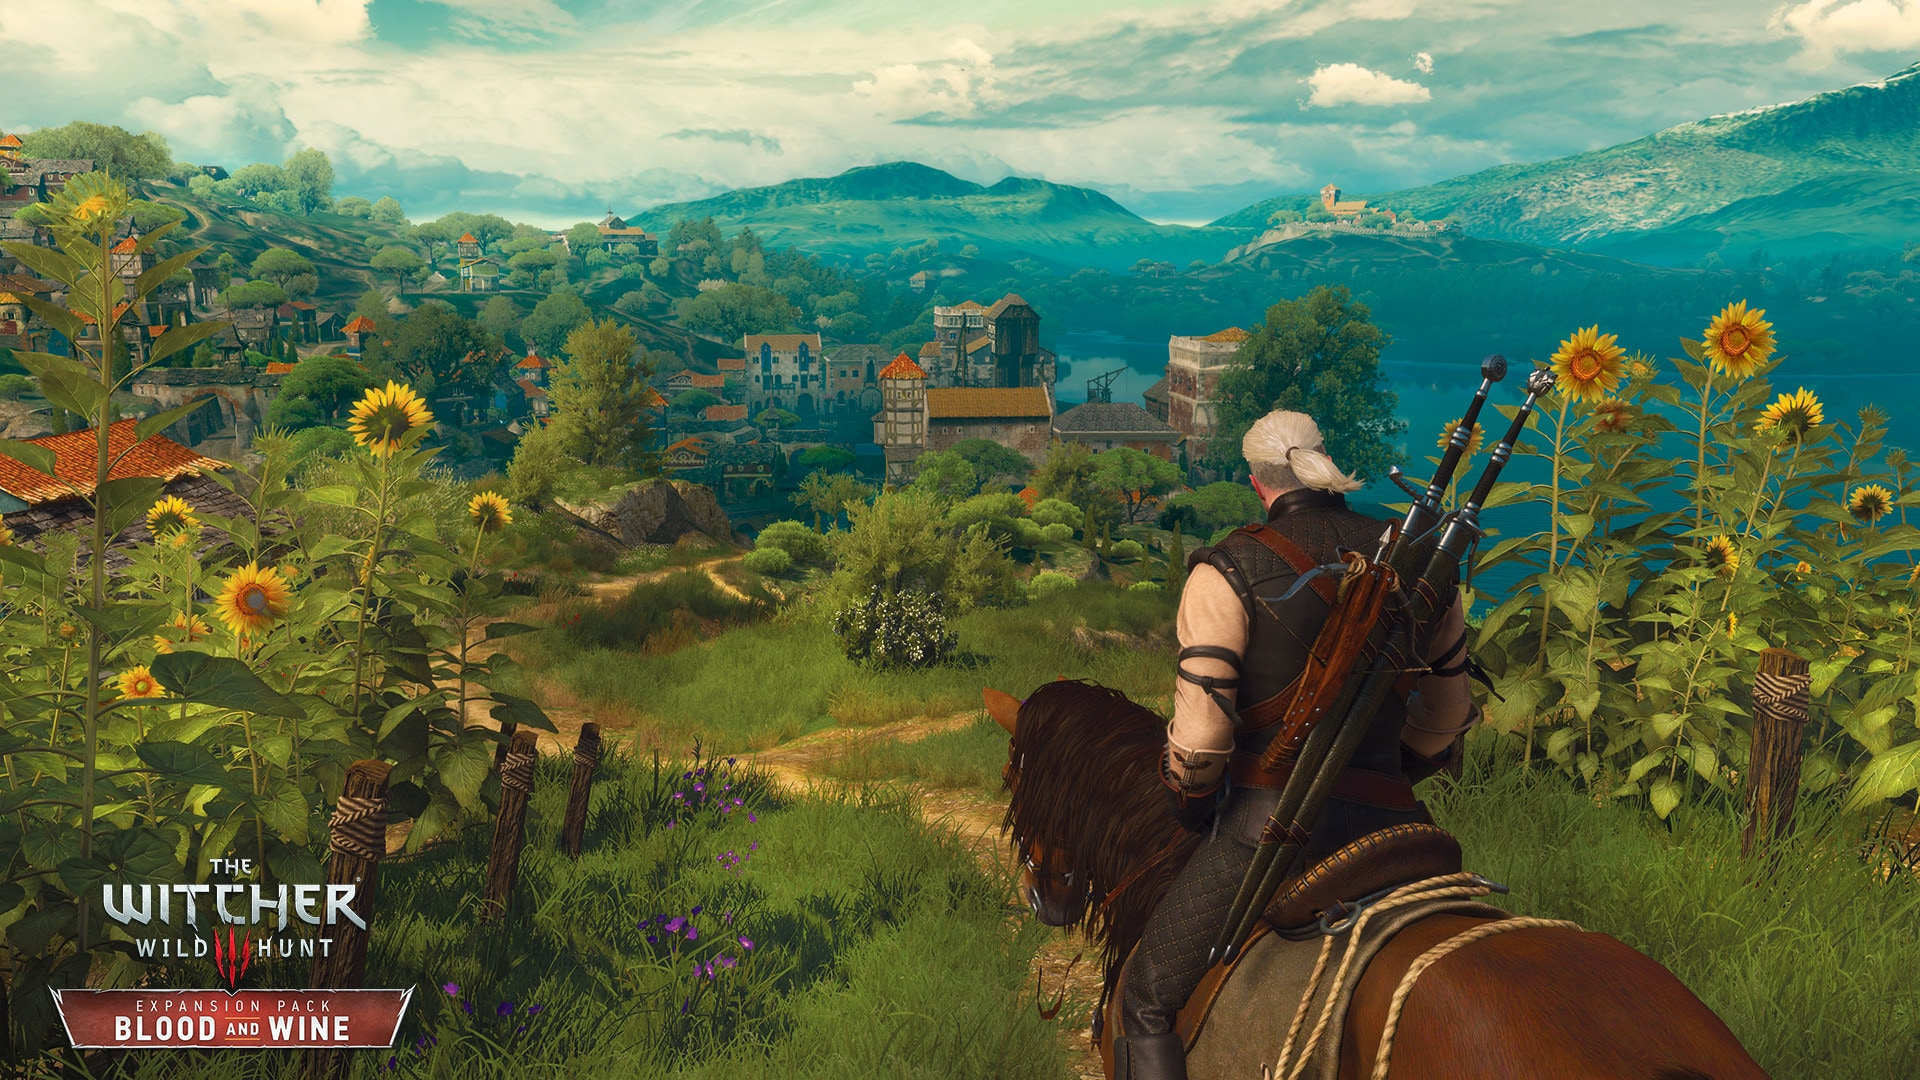 The Witcher 3: Wild Hunt - Blood and Wine Key Steam GLOBAL - 3